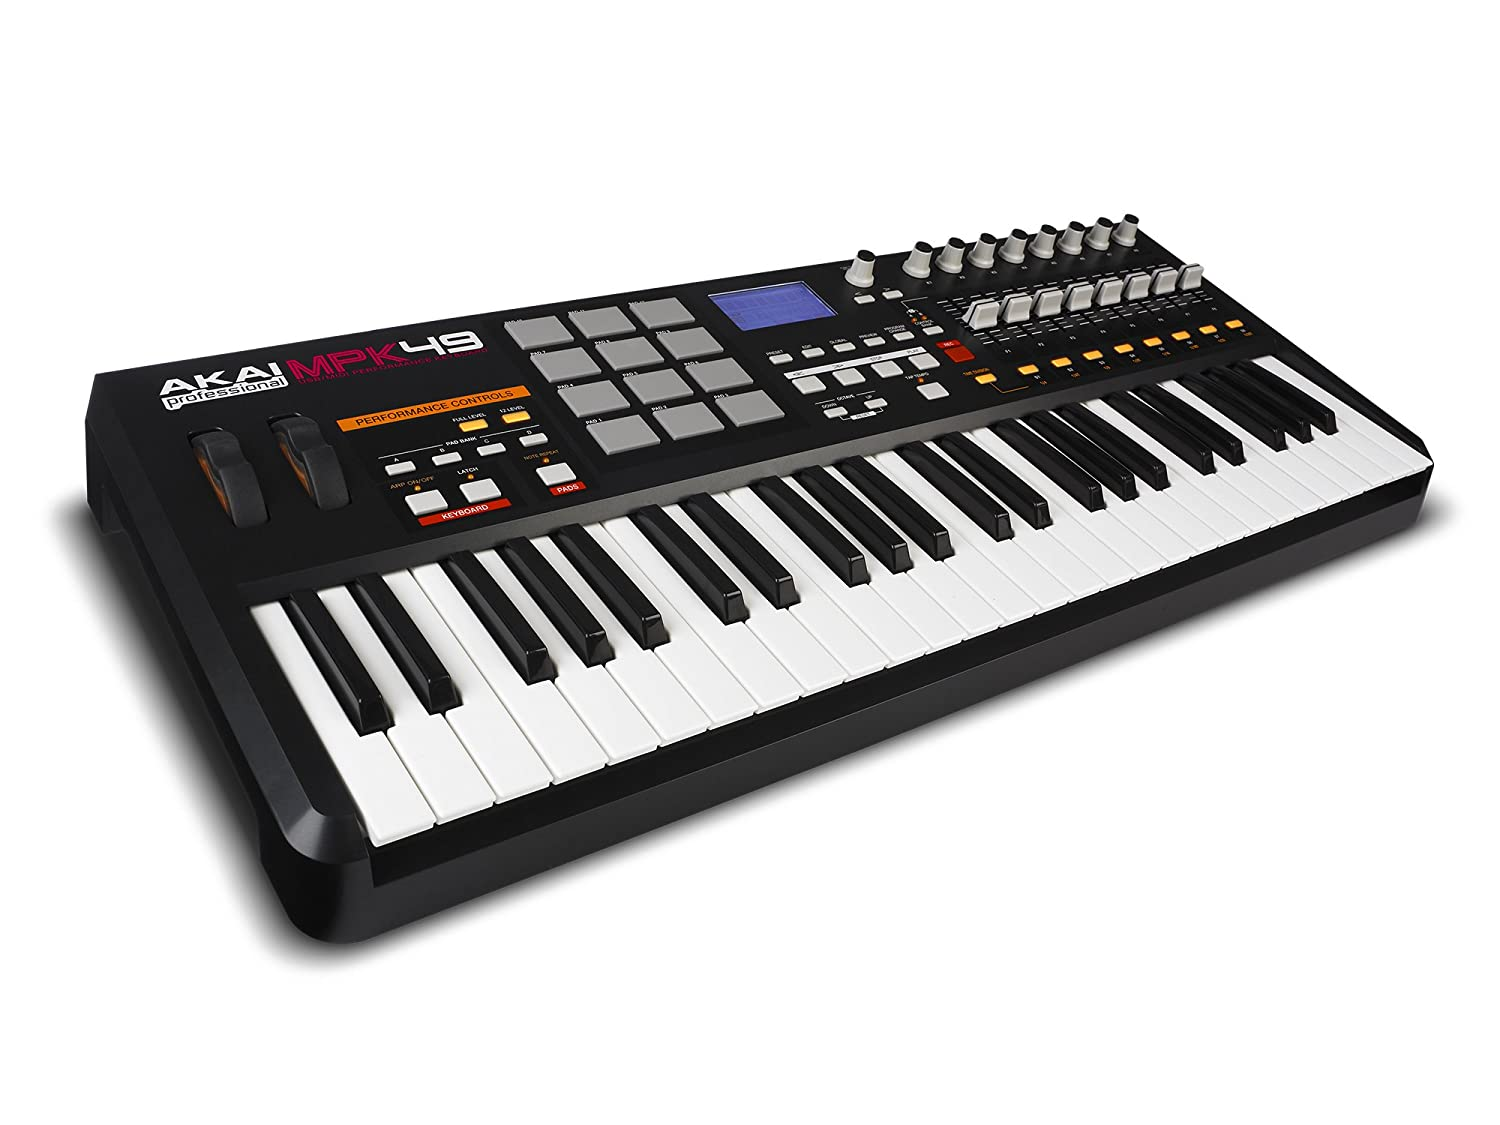 What to Get your Dad for Christmas- Keyboard Controller with MPC Pads